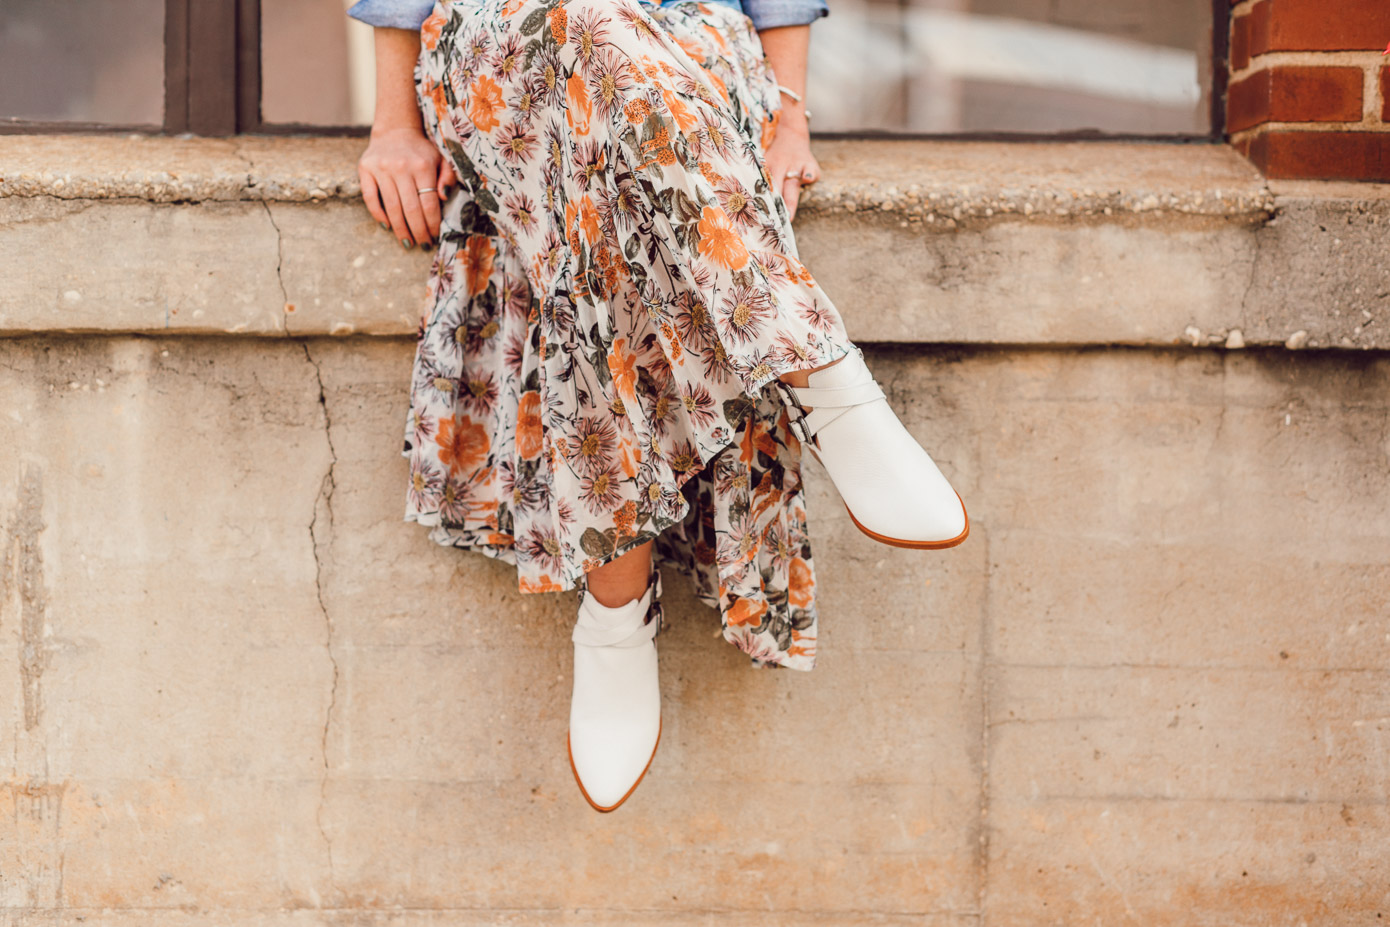 Fall Floral Midi Dress, White Booties for Fall 2018 | How to Style the Western Trend for Fall 2018 featured on Louella Reese Blog